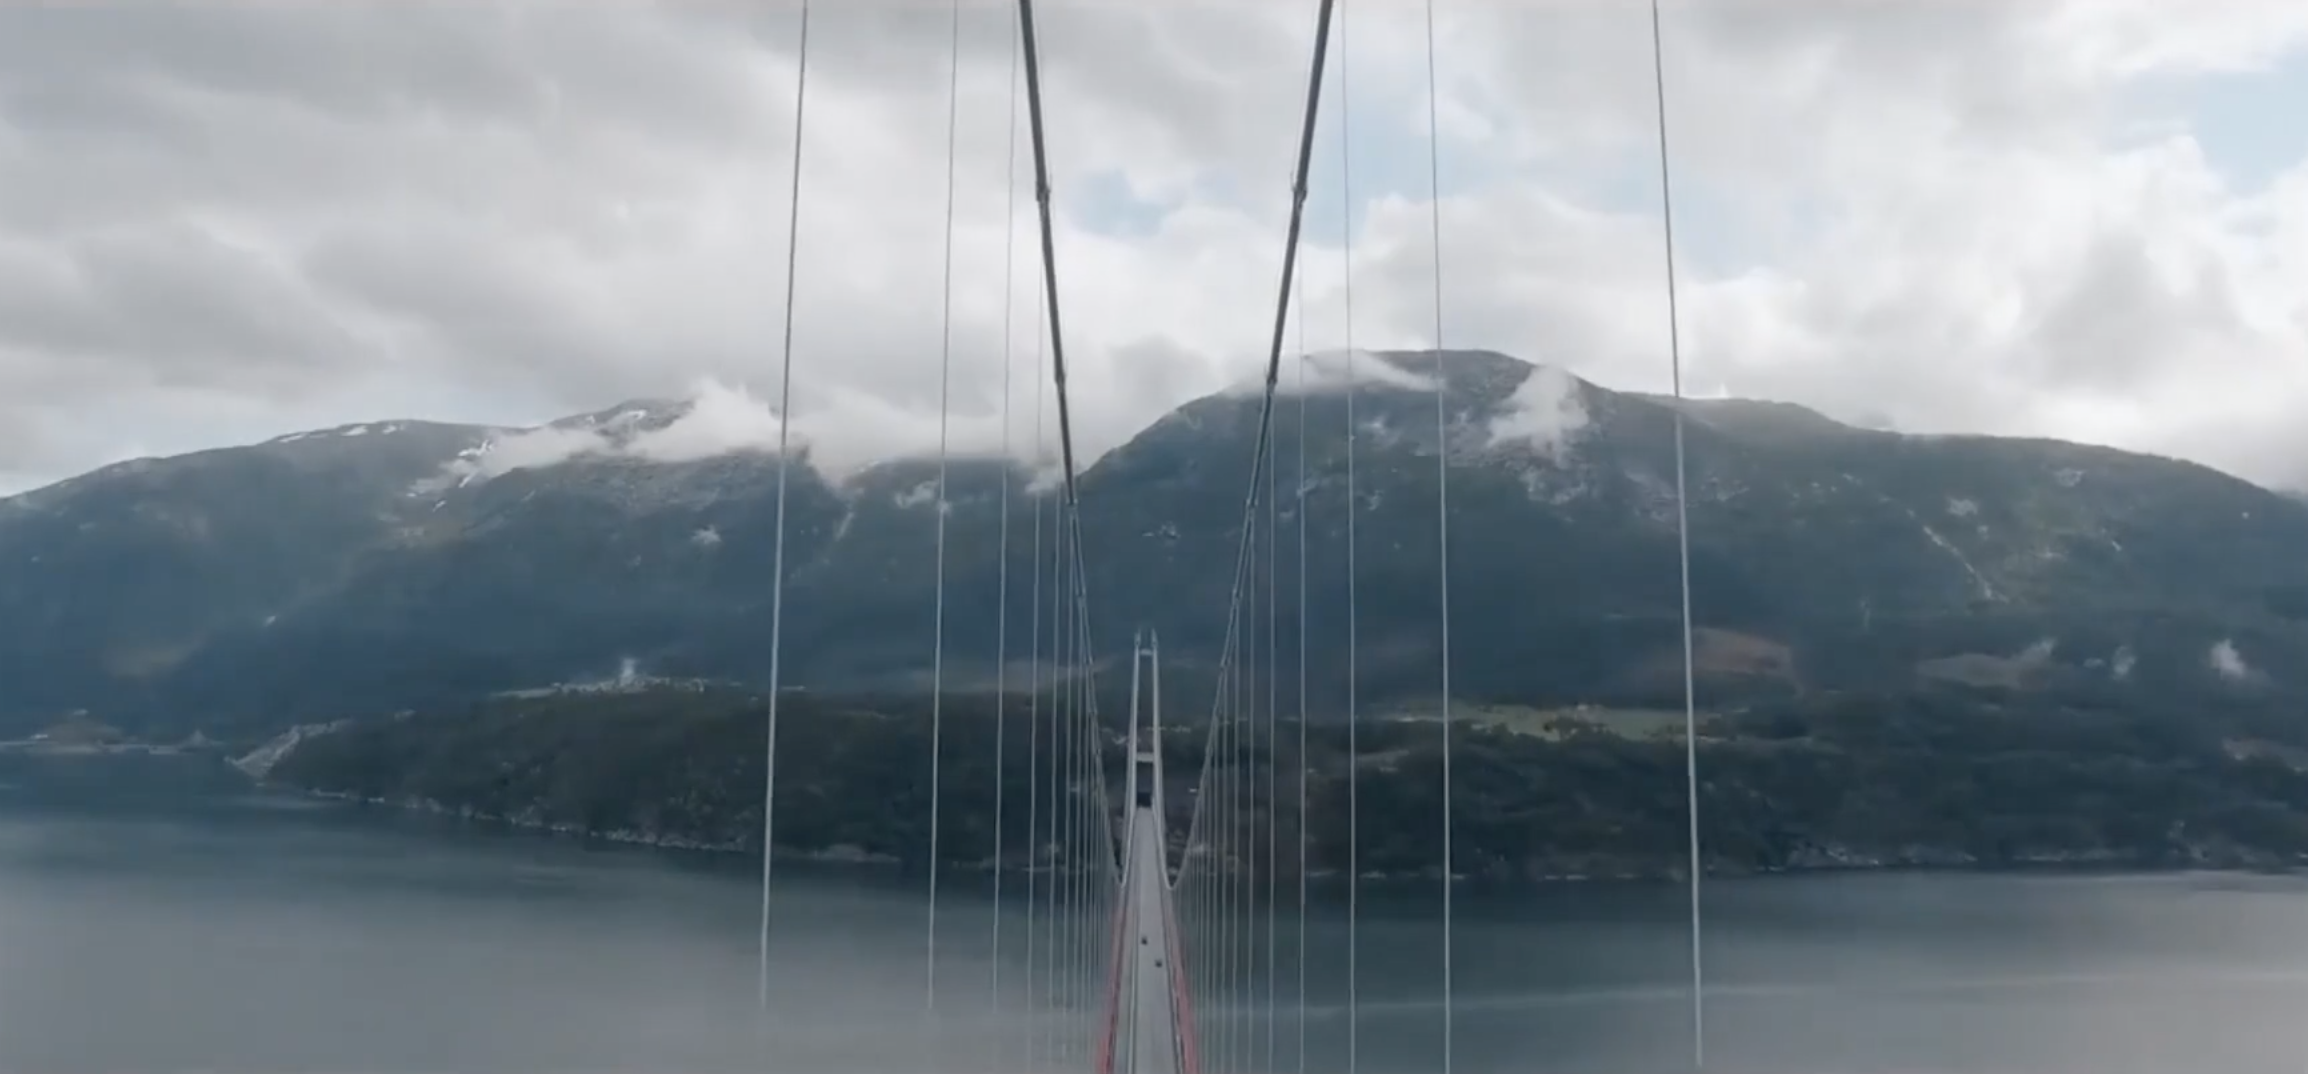 suspension bridge spanning a river/fjord